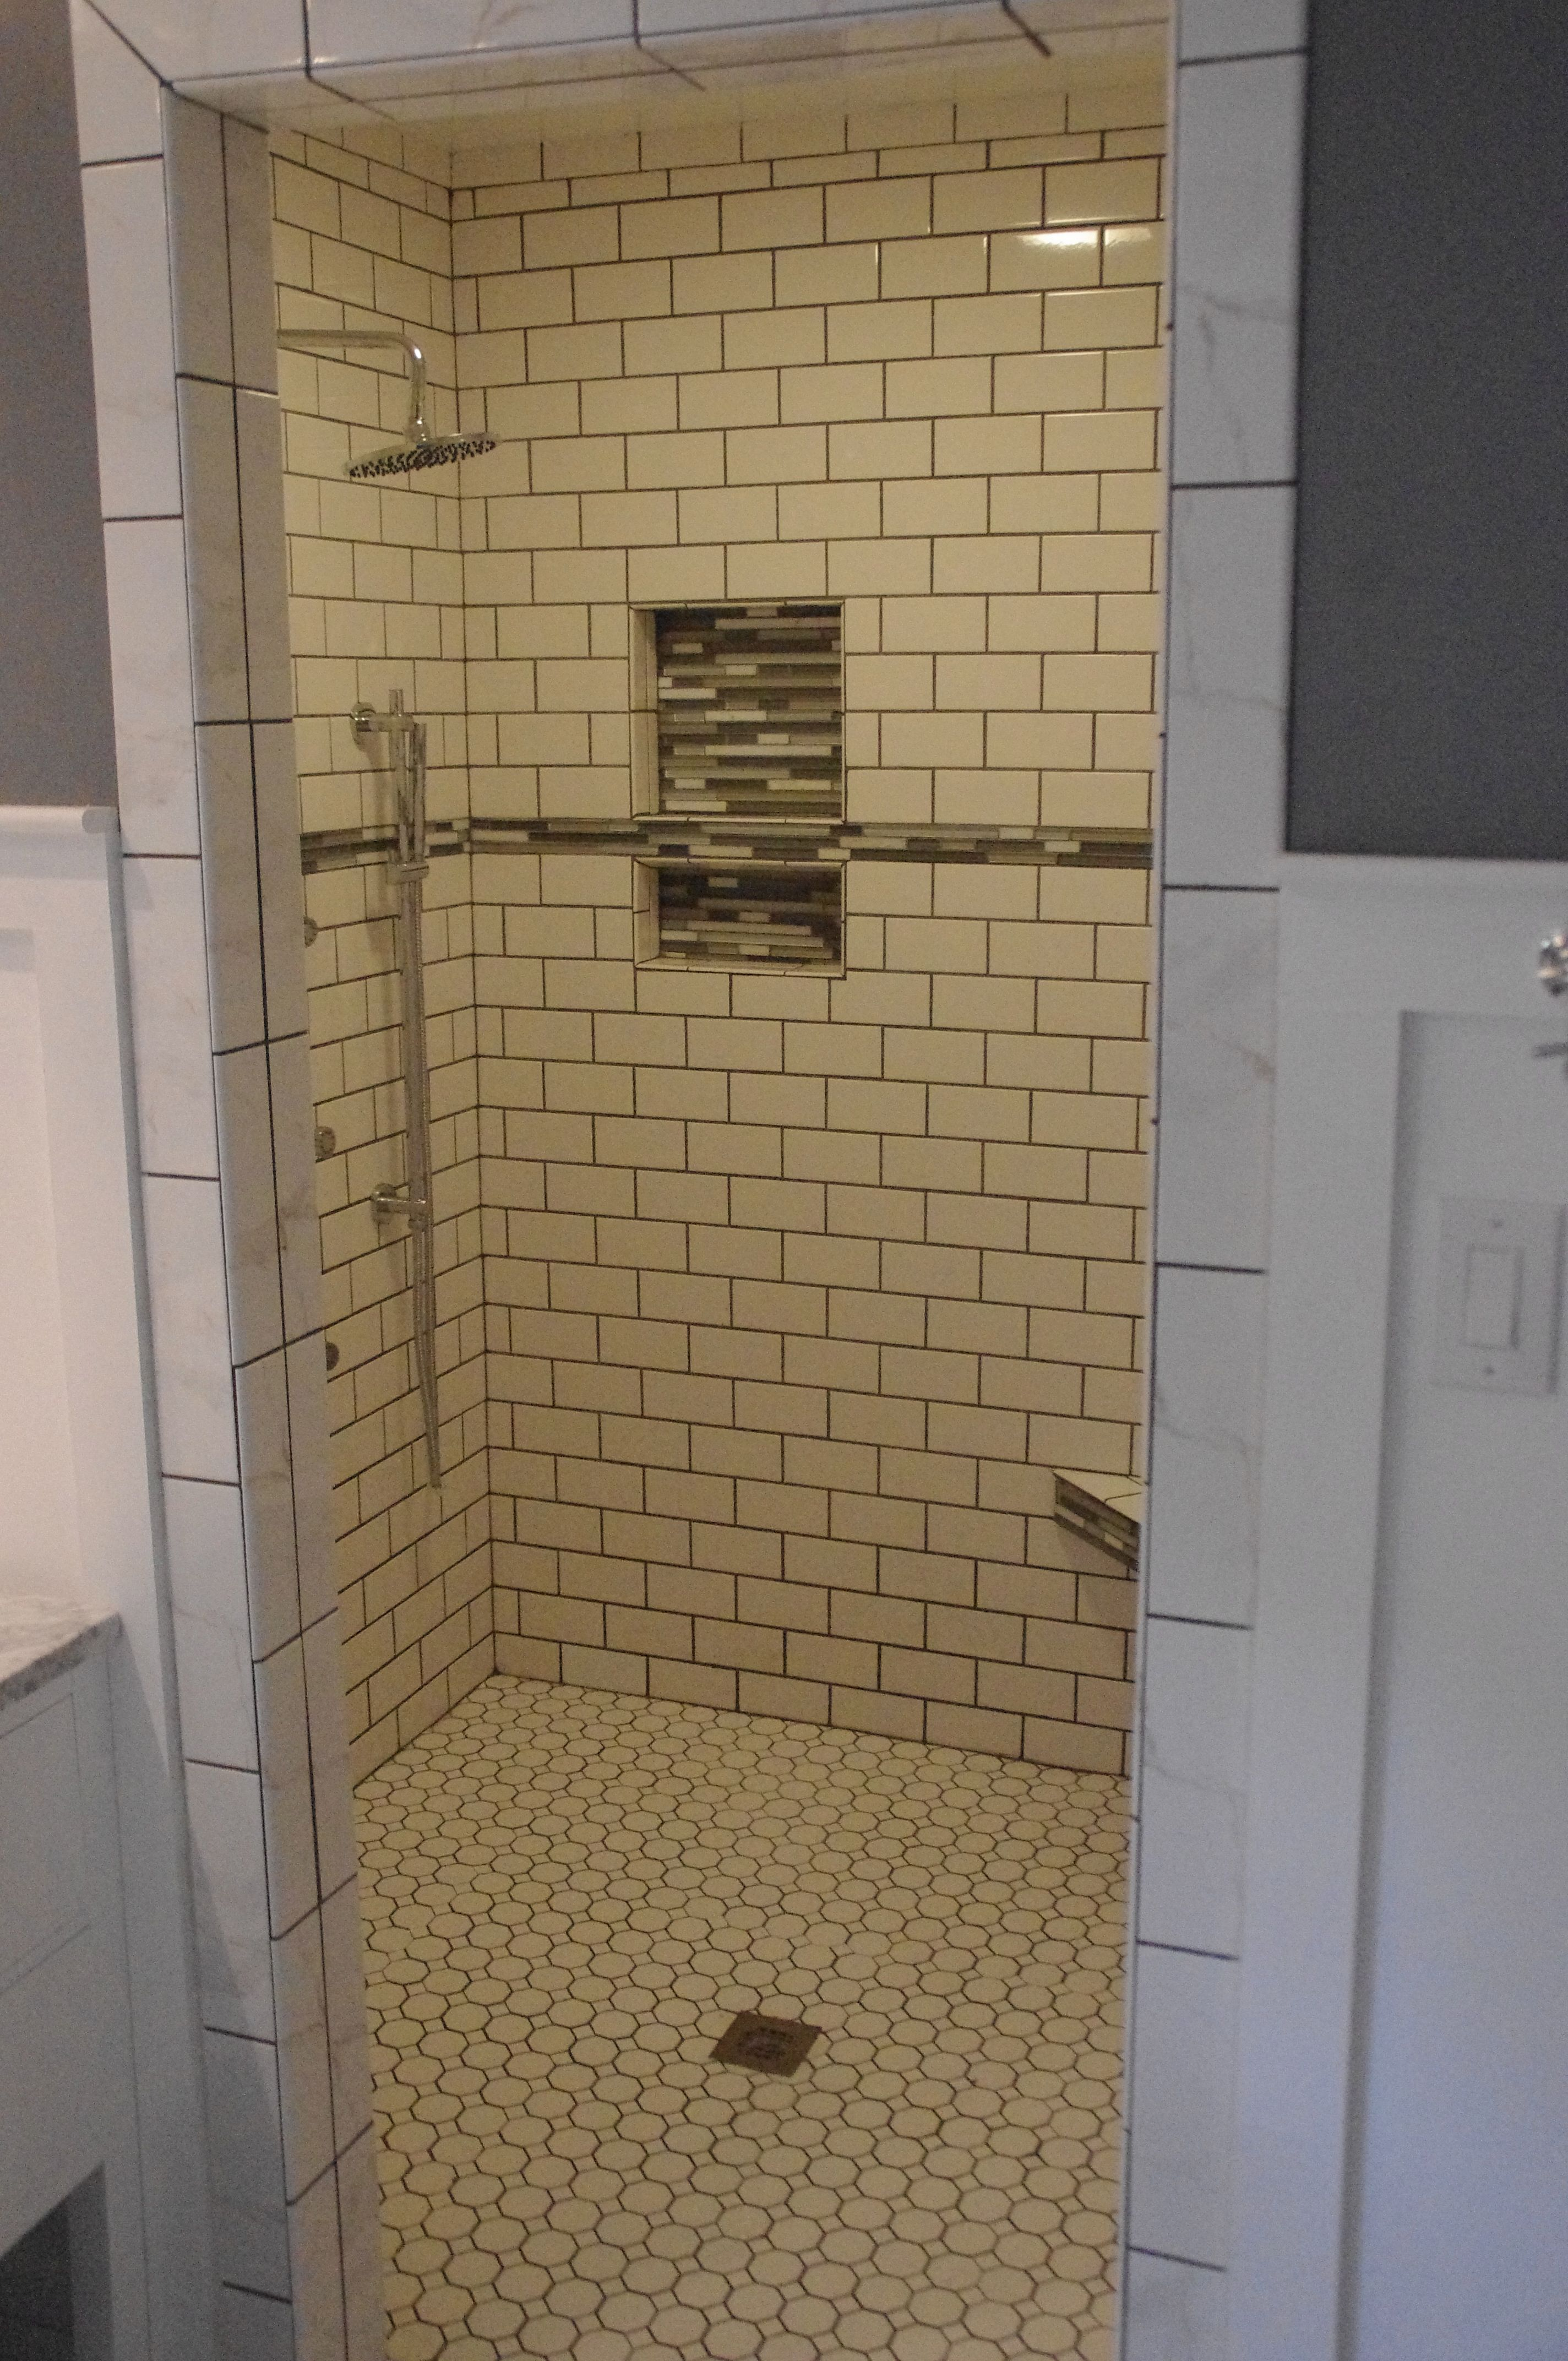 White subway tile shower with glass inserts after bathroom makeover ...